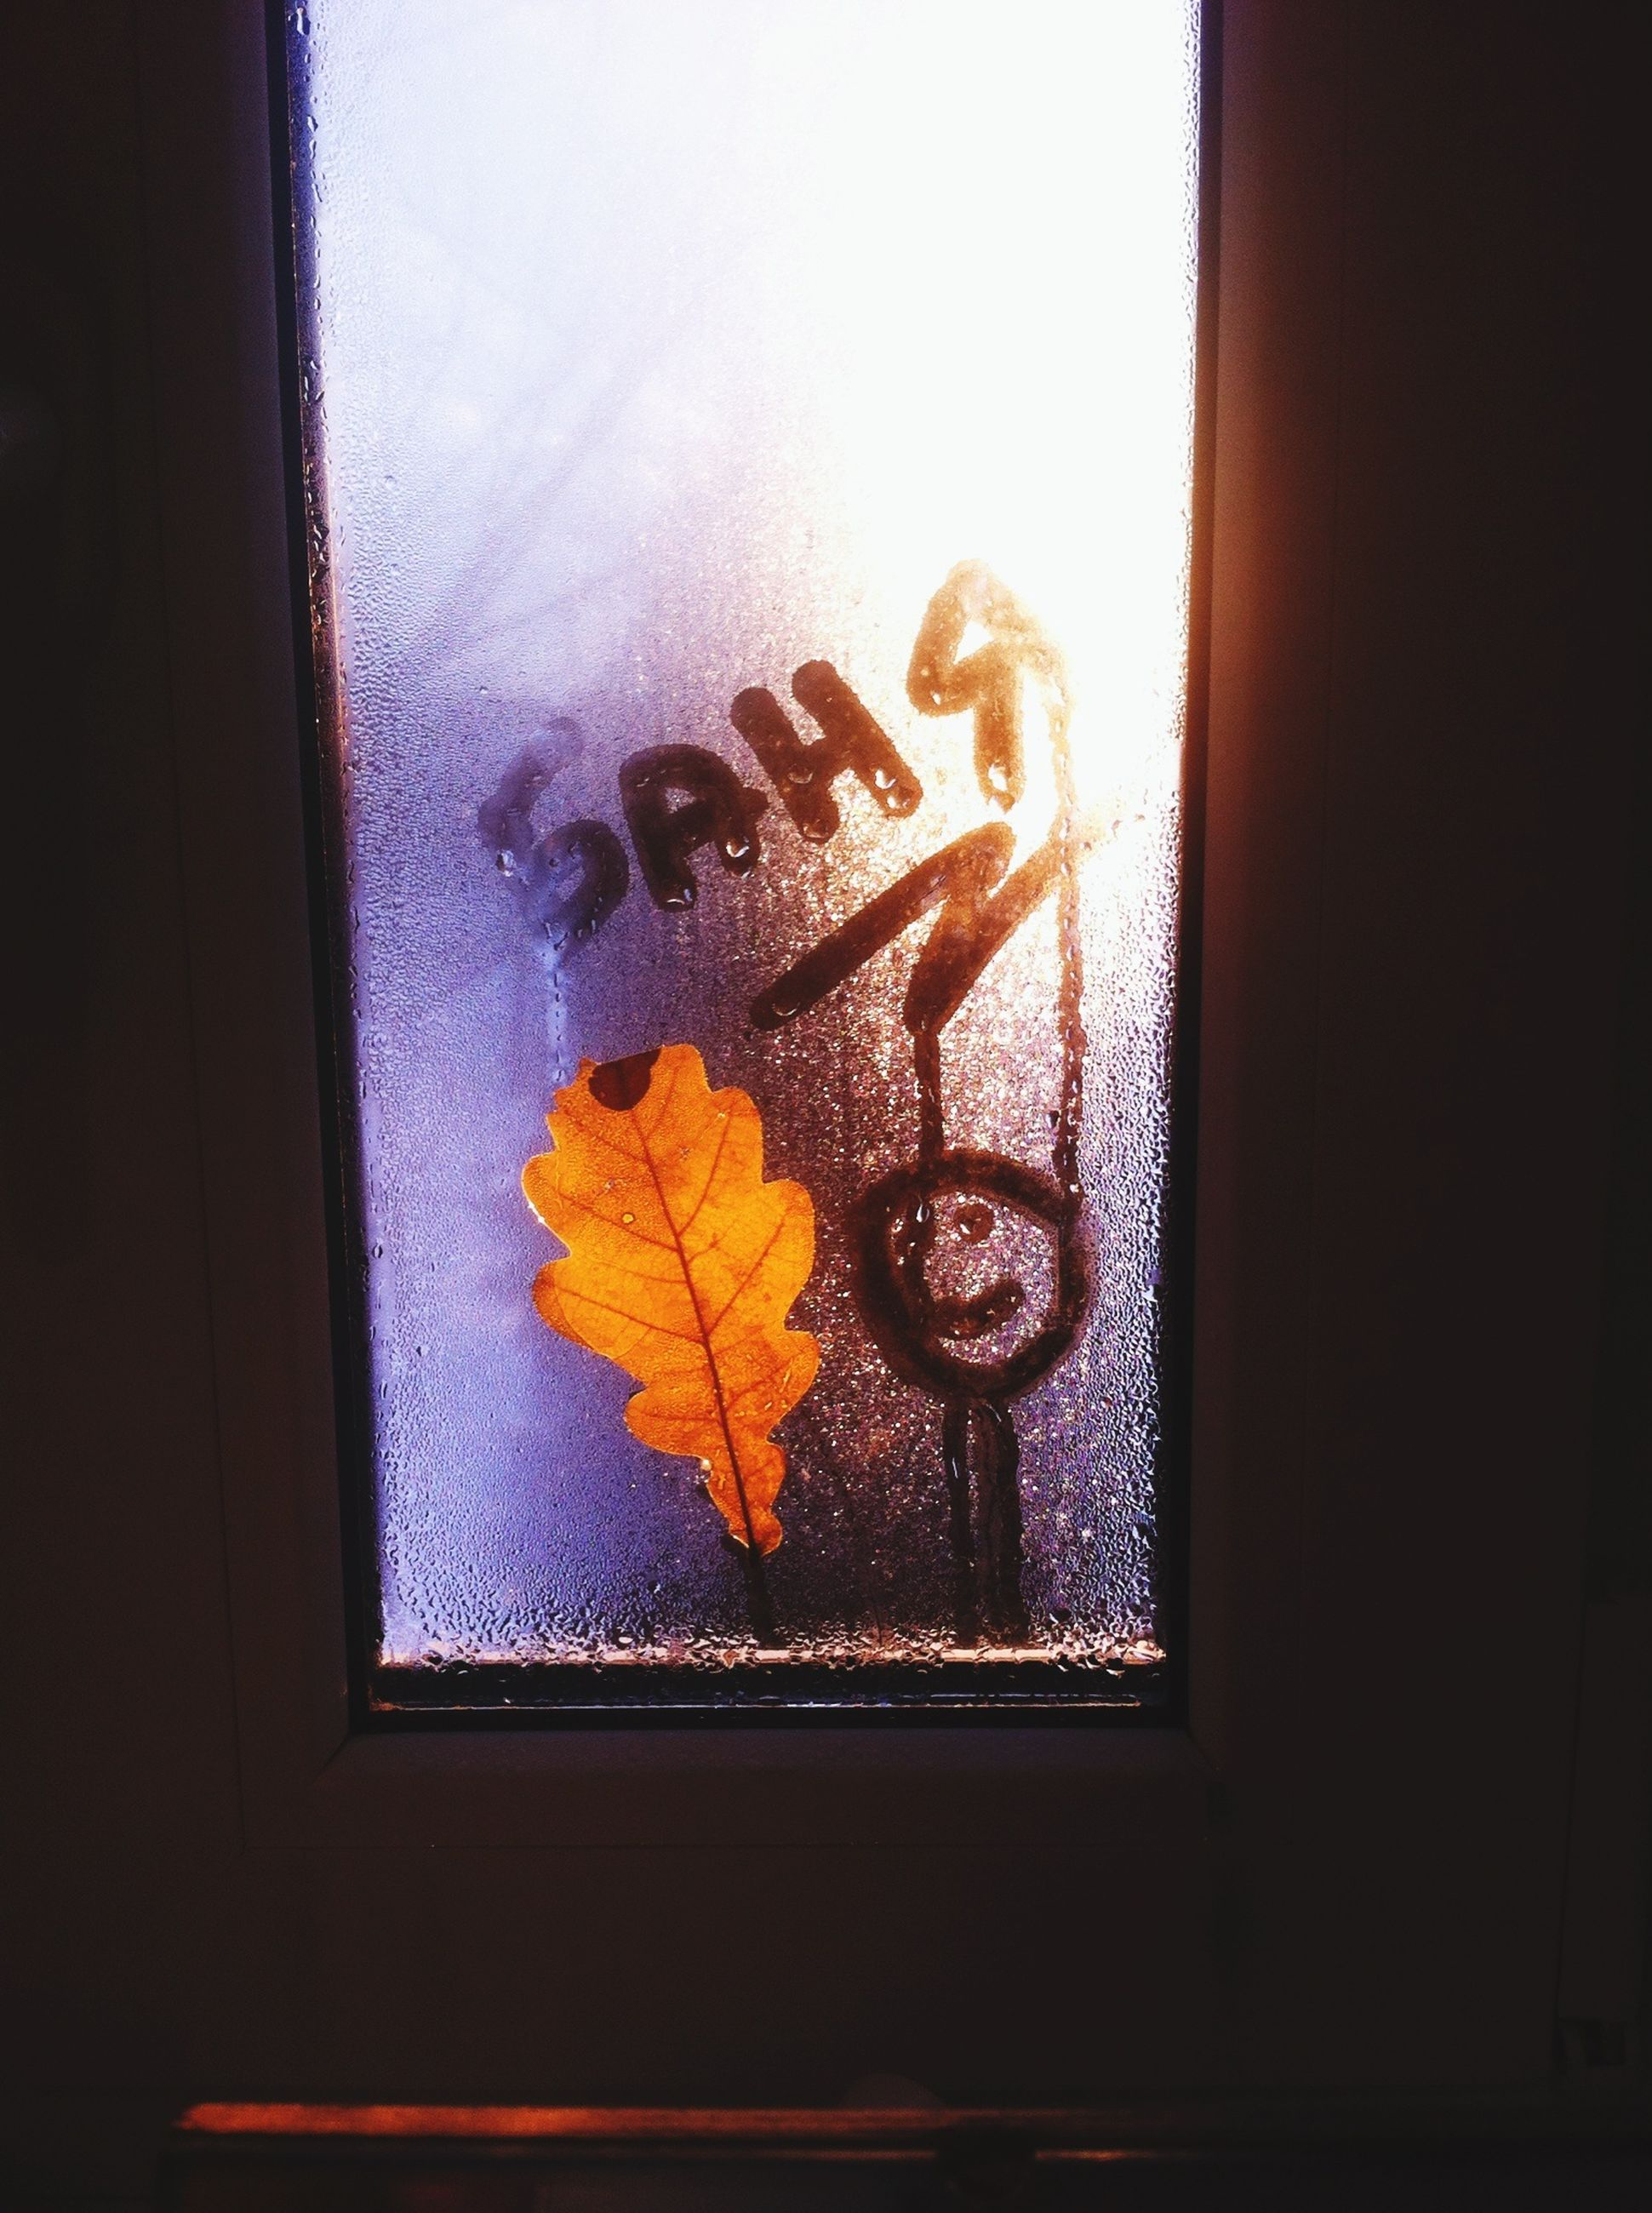 indoors, window, close-up, glass - material, wall - building feature, wall, art, creativity, door, art and craft, no people, yellow, transparent, still life, home interior, table, metal, leaf, window sill, day